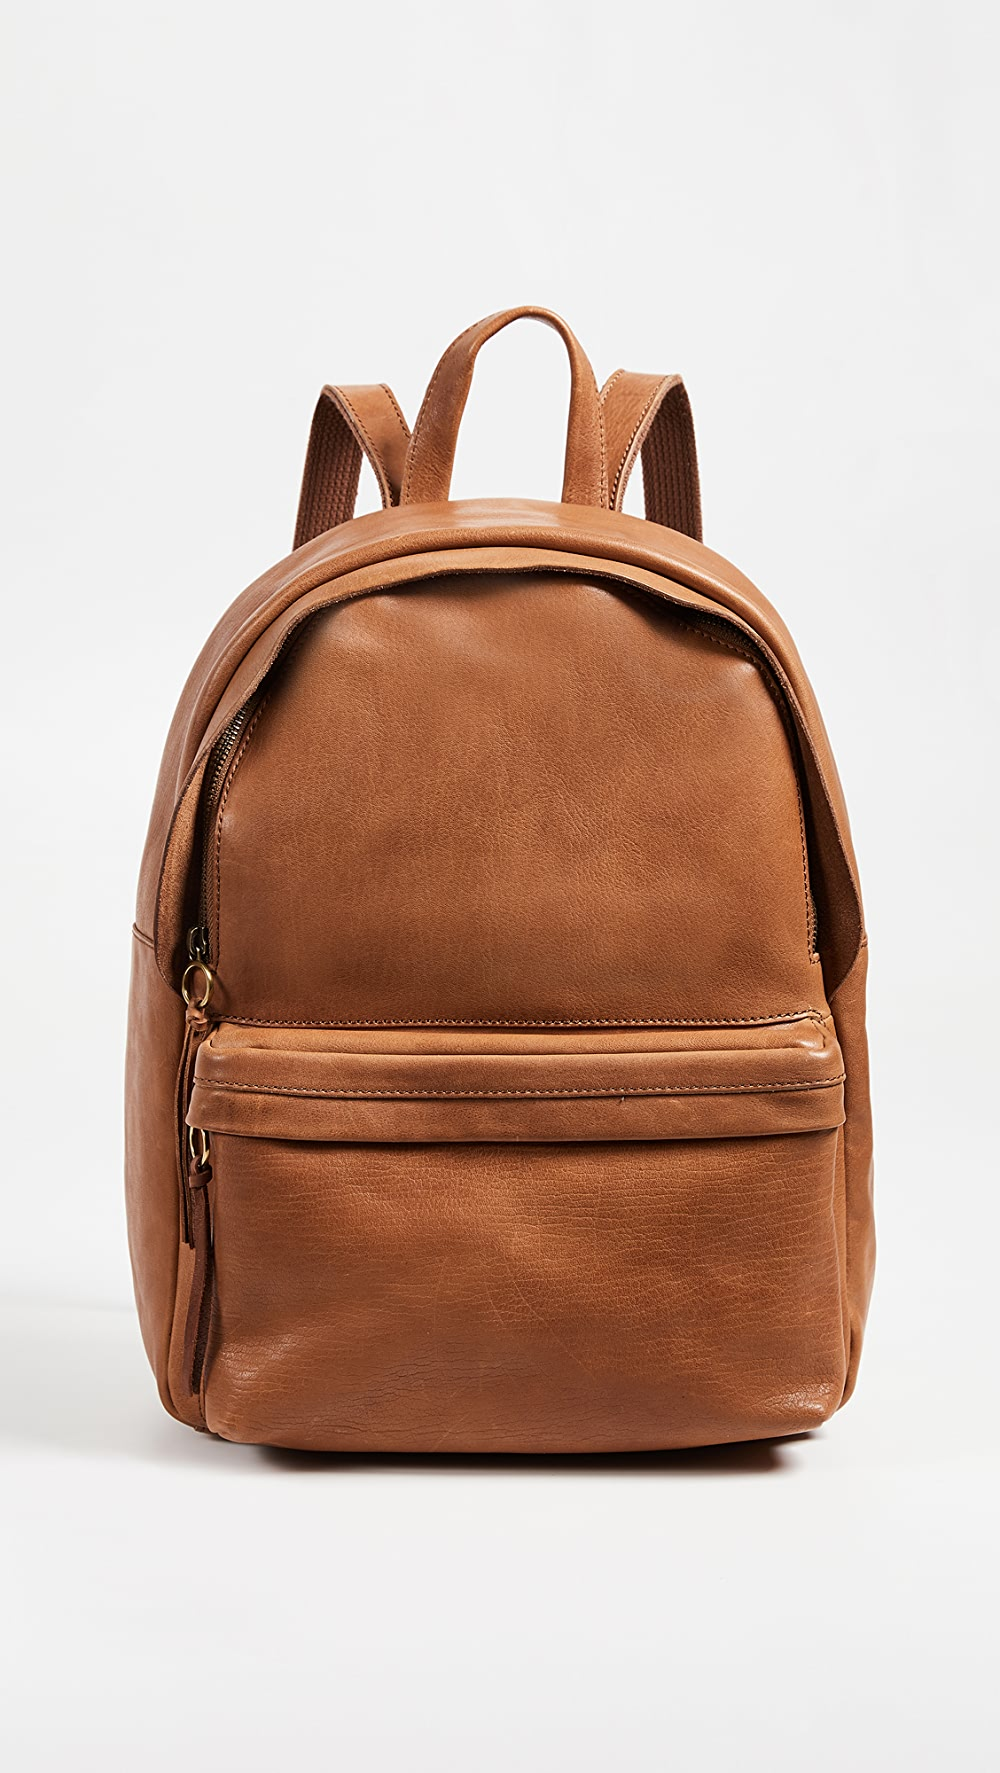 Honesty Madewell - The Lorimer Backpack Catalogues Will Be Sent Upon Request